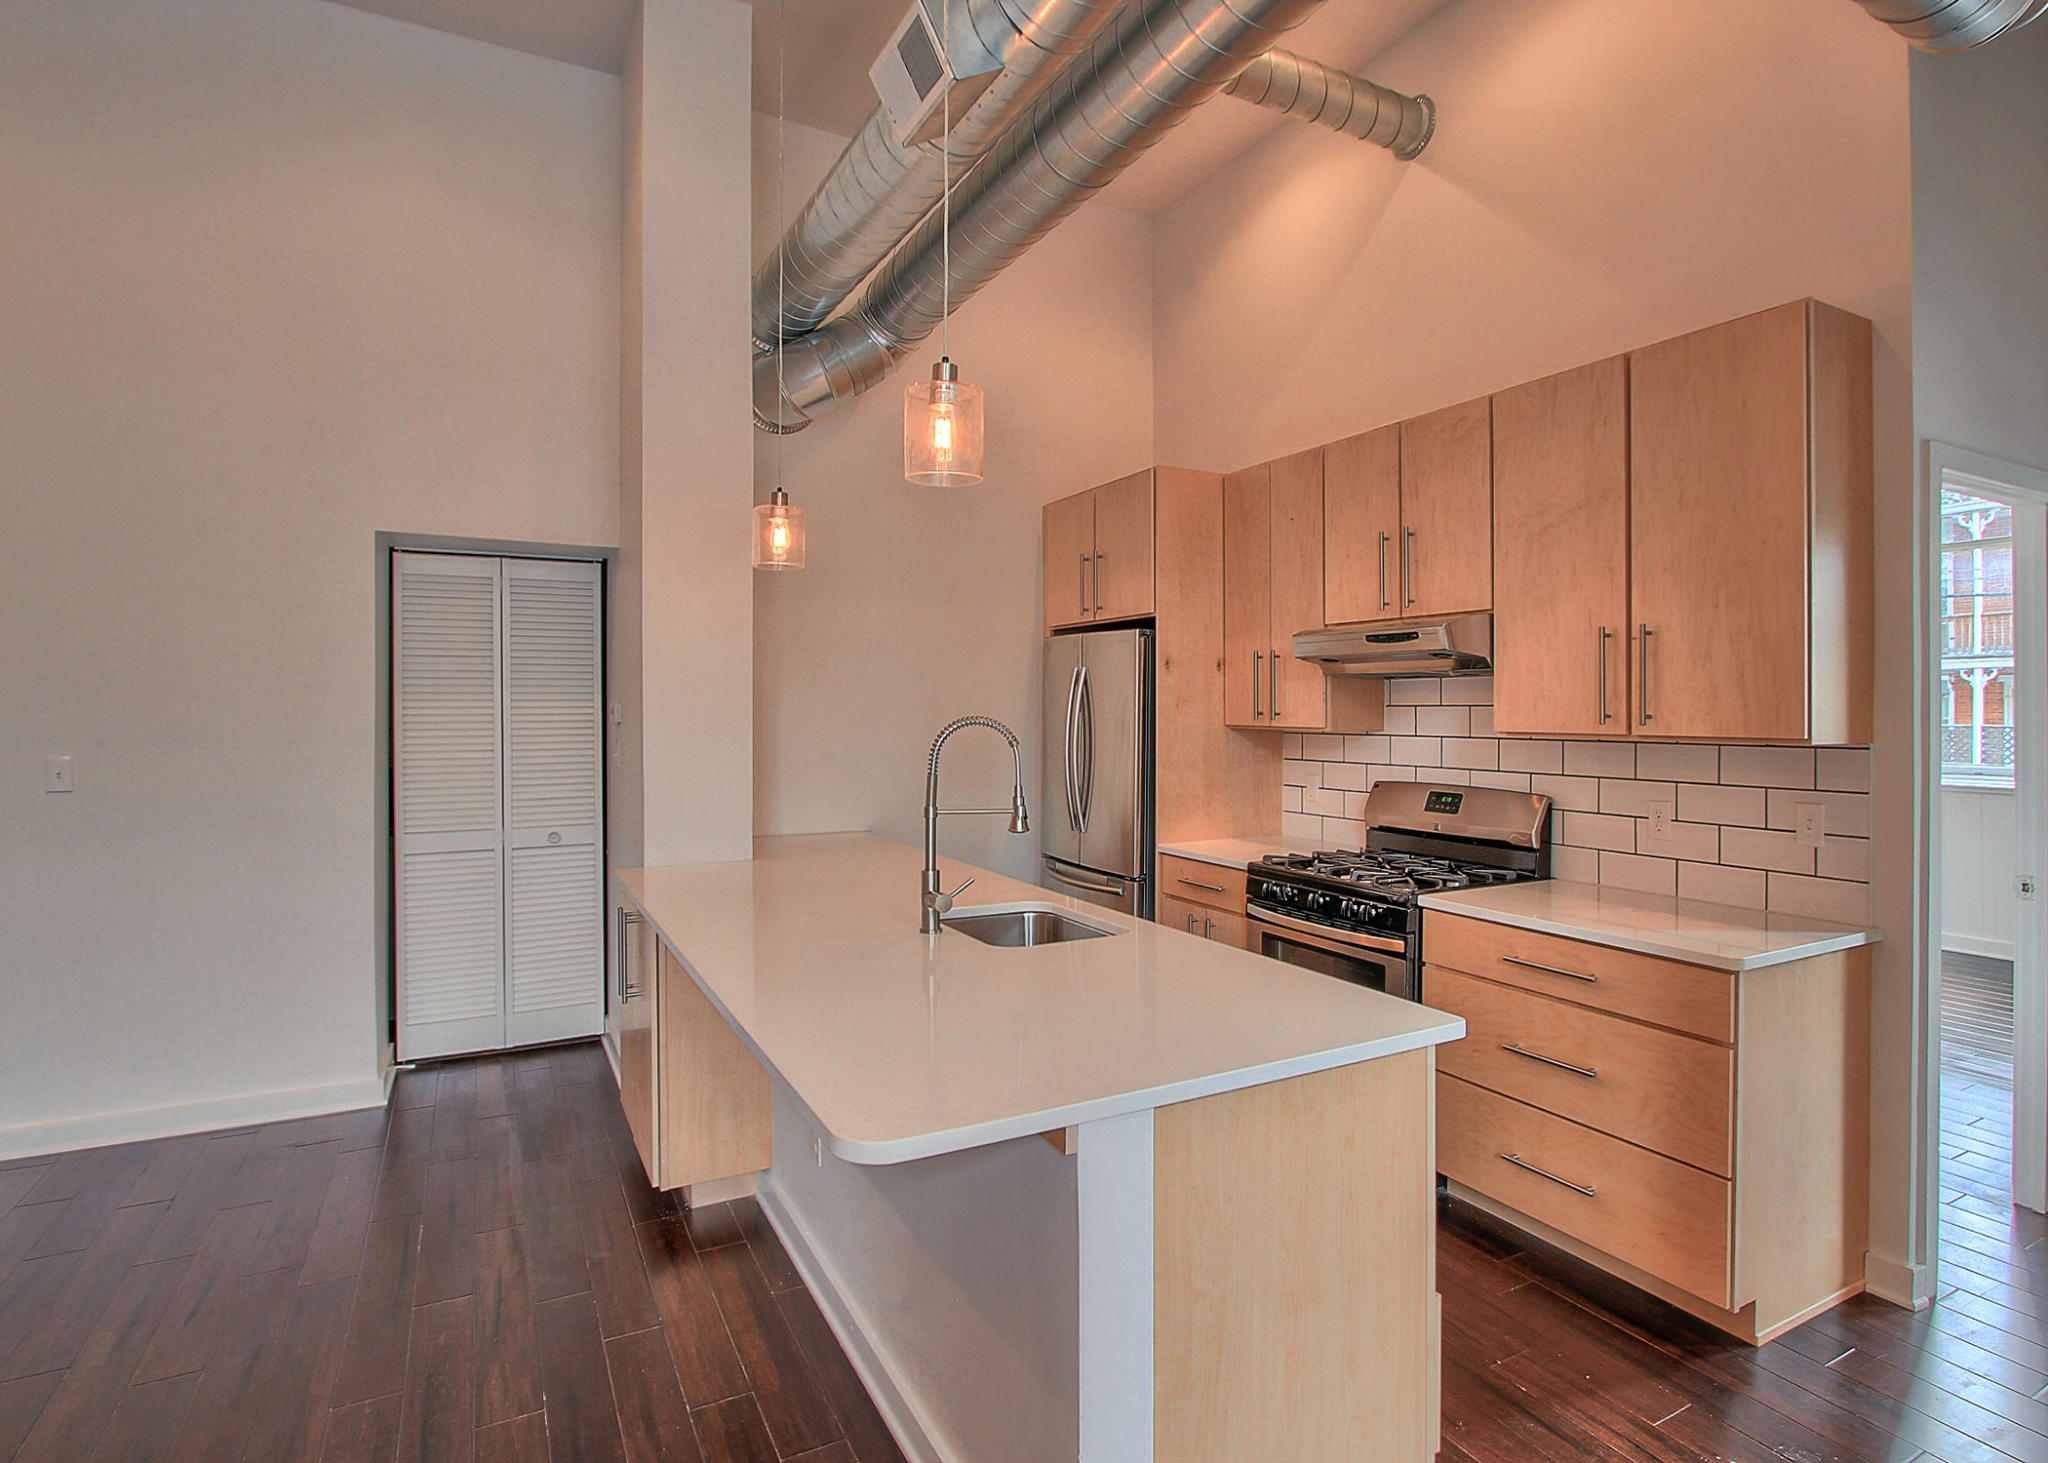 1839 Green St #206, Harrisburg, PA 17102 For Rent | Trulia